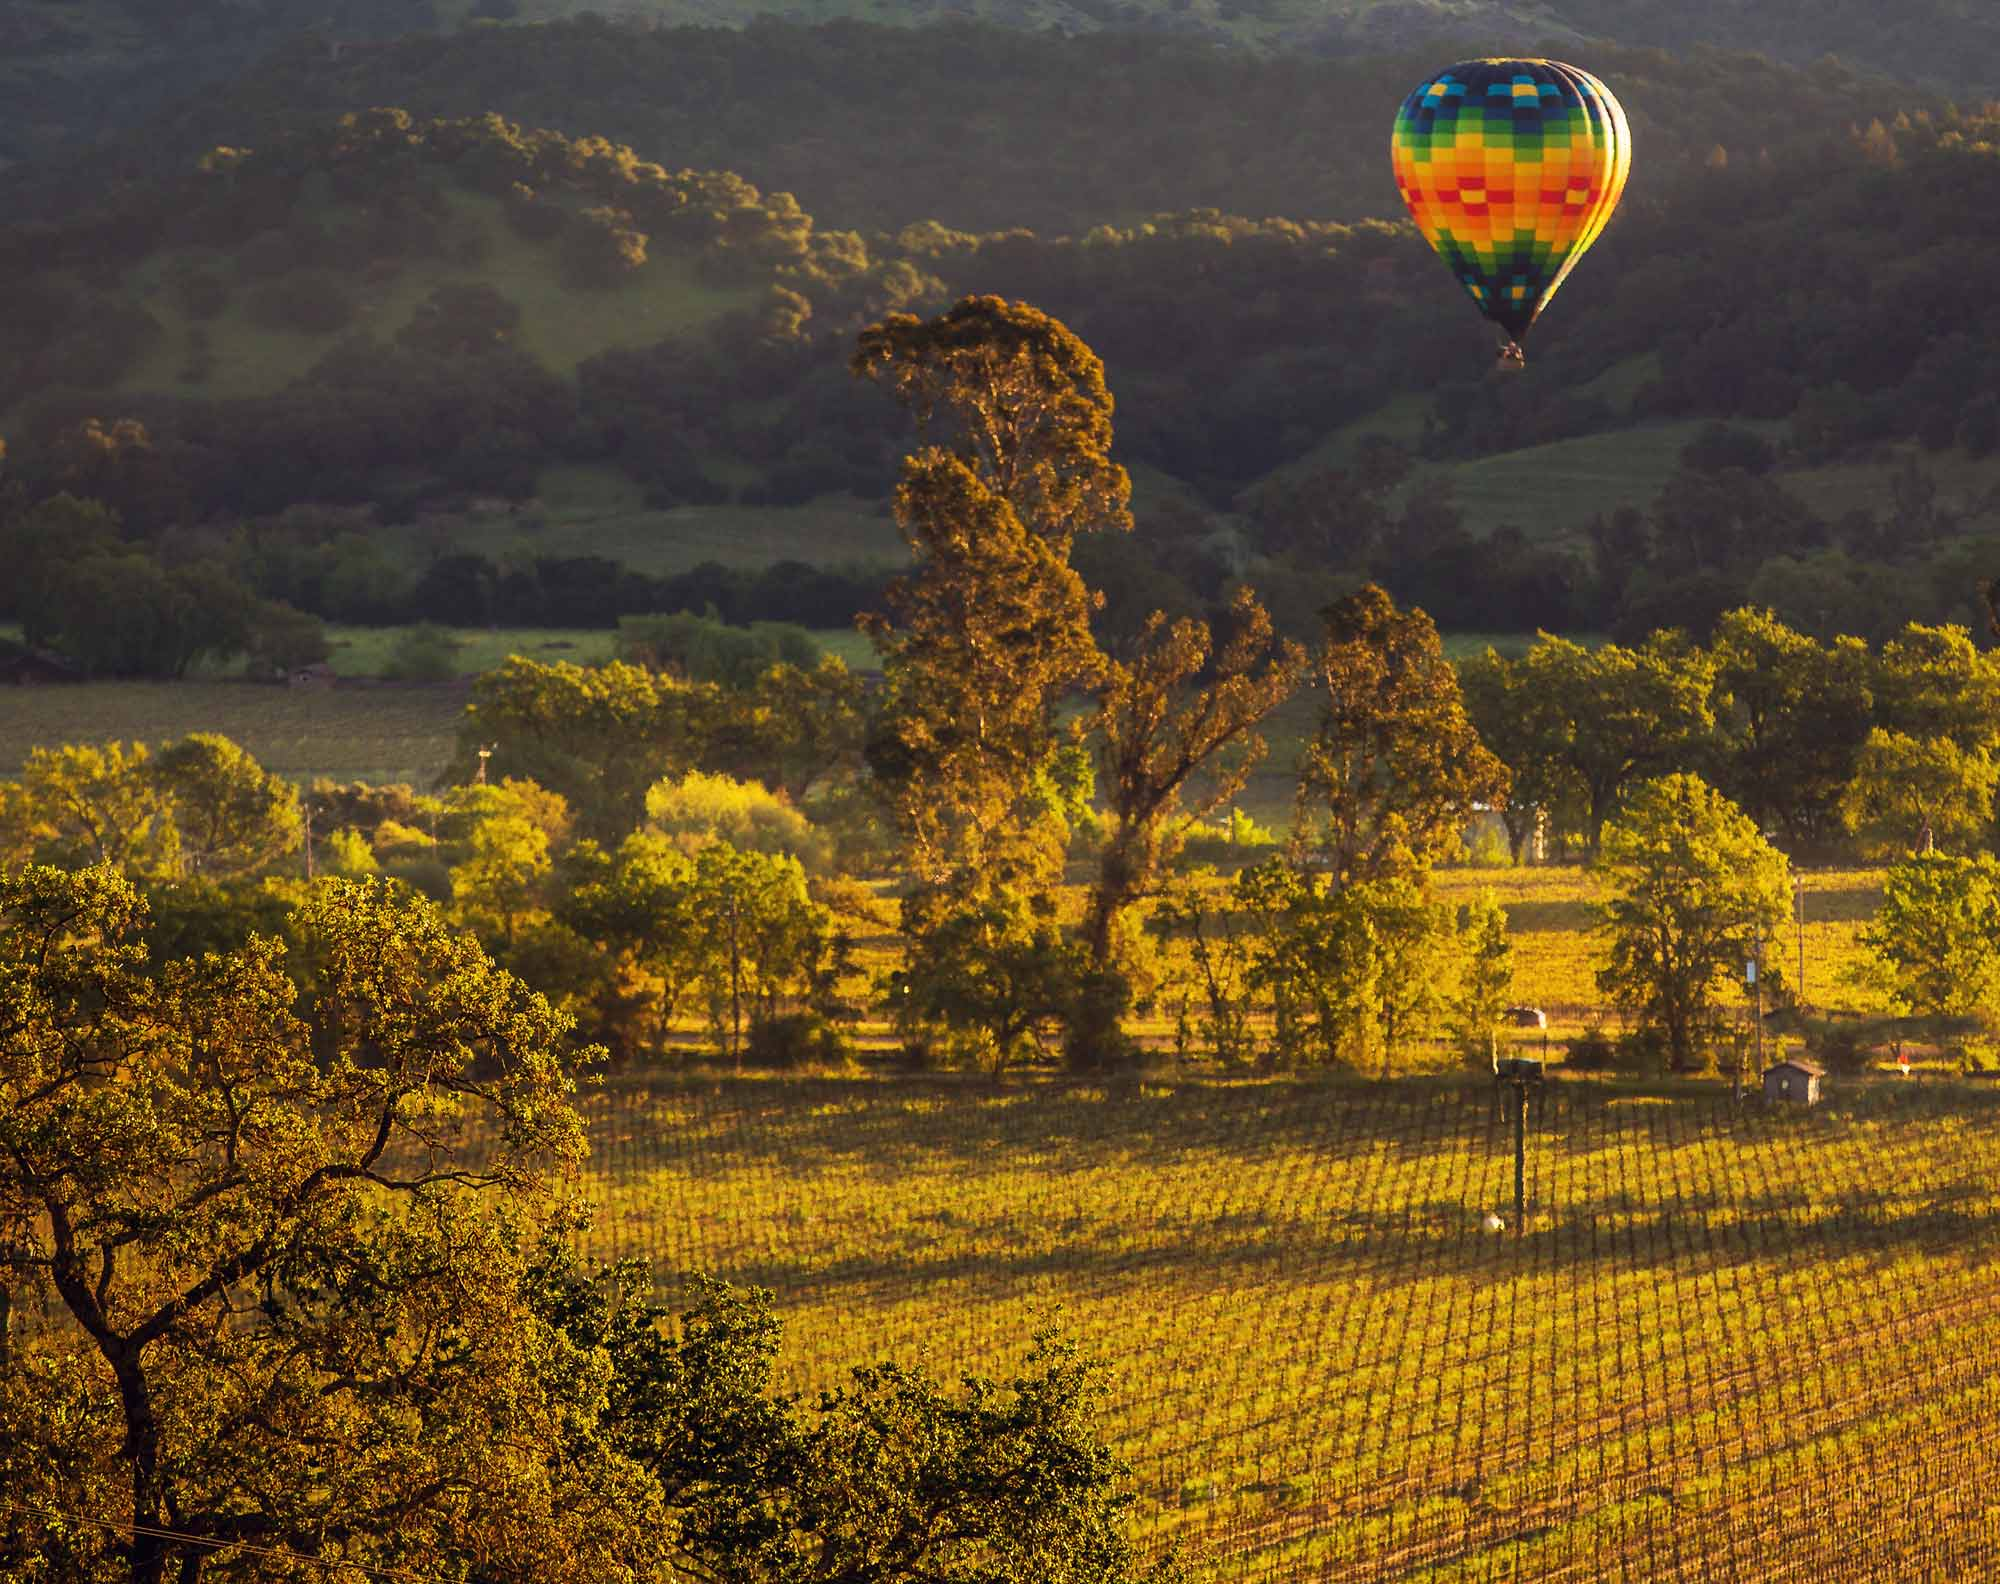 A hot air balloon floating through the valley at Keever Vineyards in Yountville, California